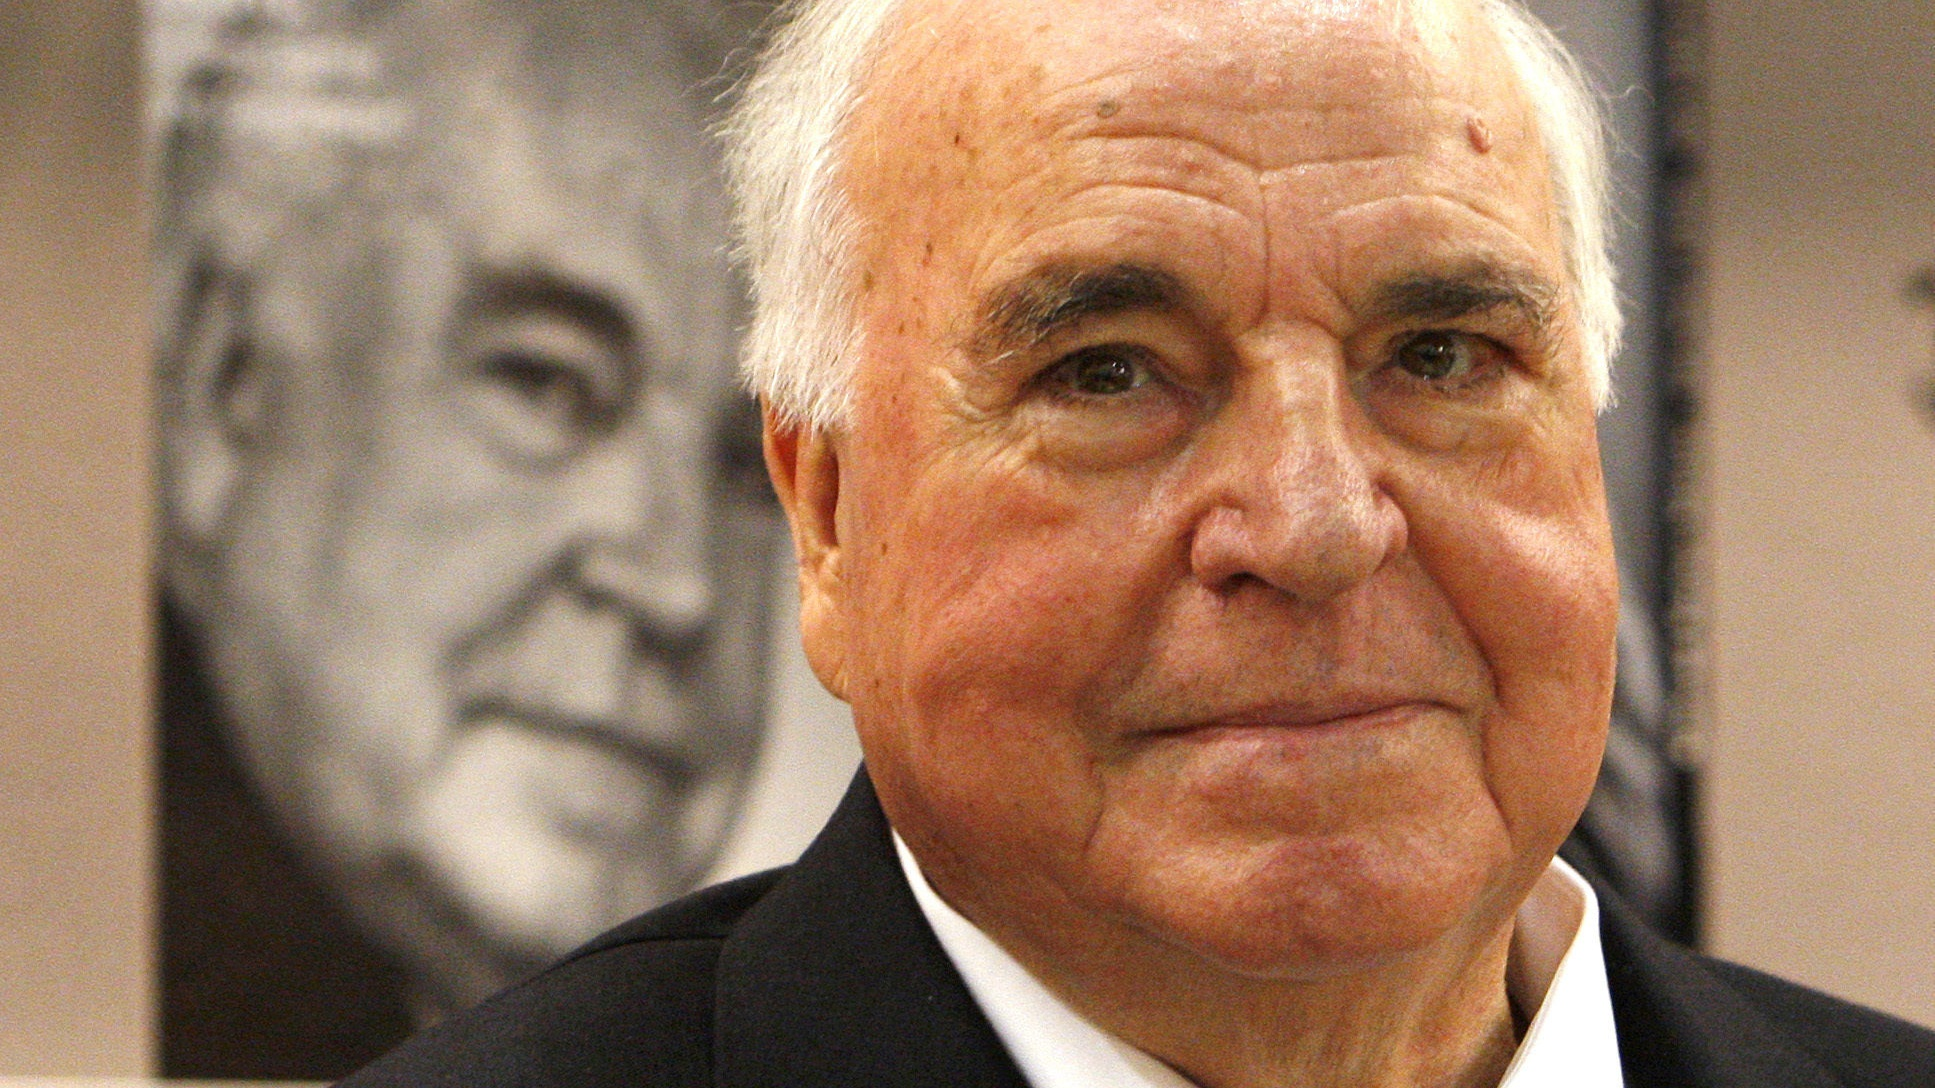 German's unification architect, Helmut Kohl dies at 87